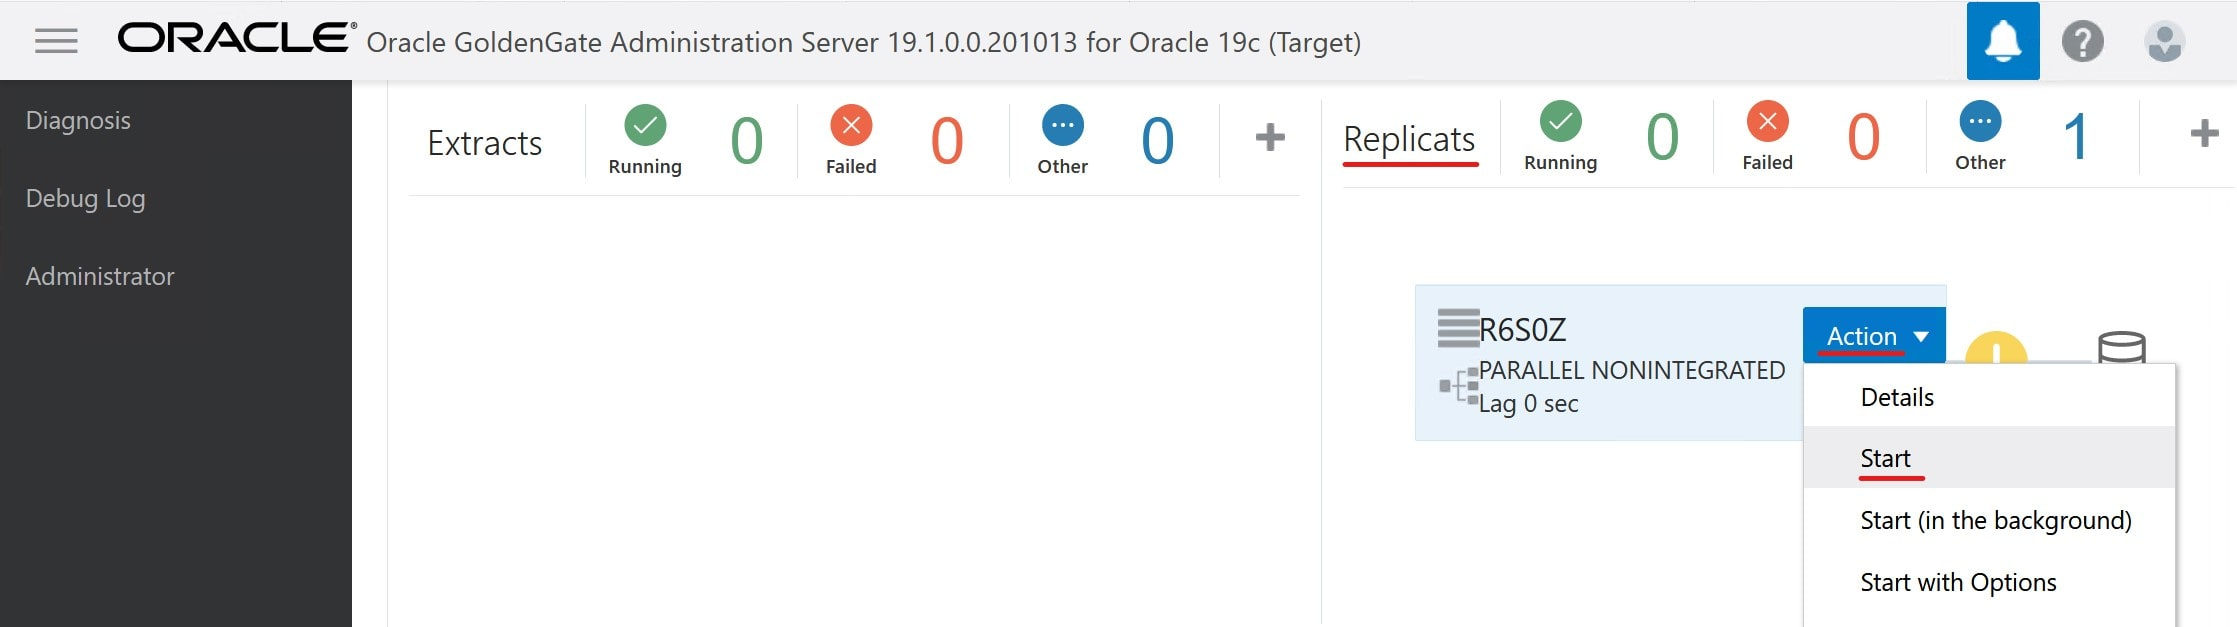 How to start replicat process in Oracle GoldenGate Microservices Architecture Hub